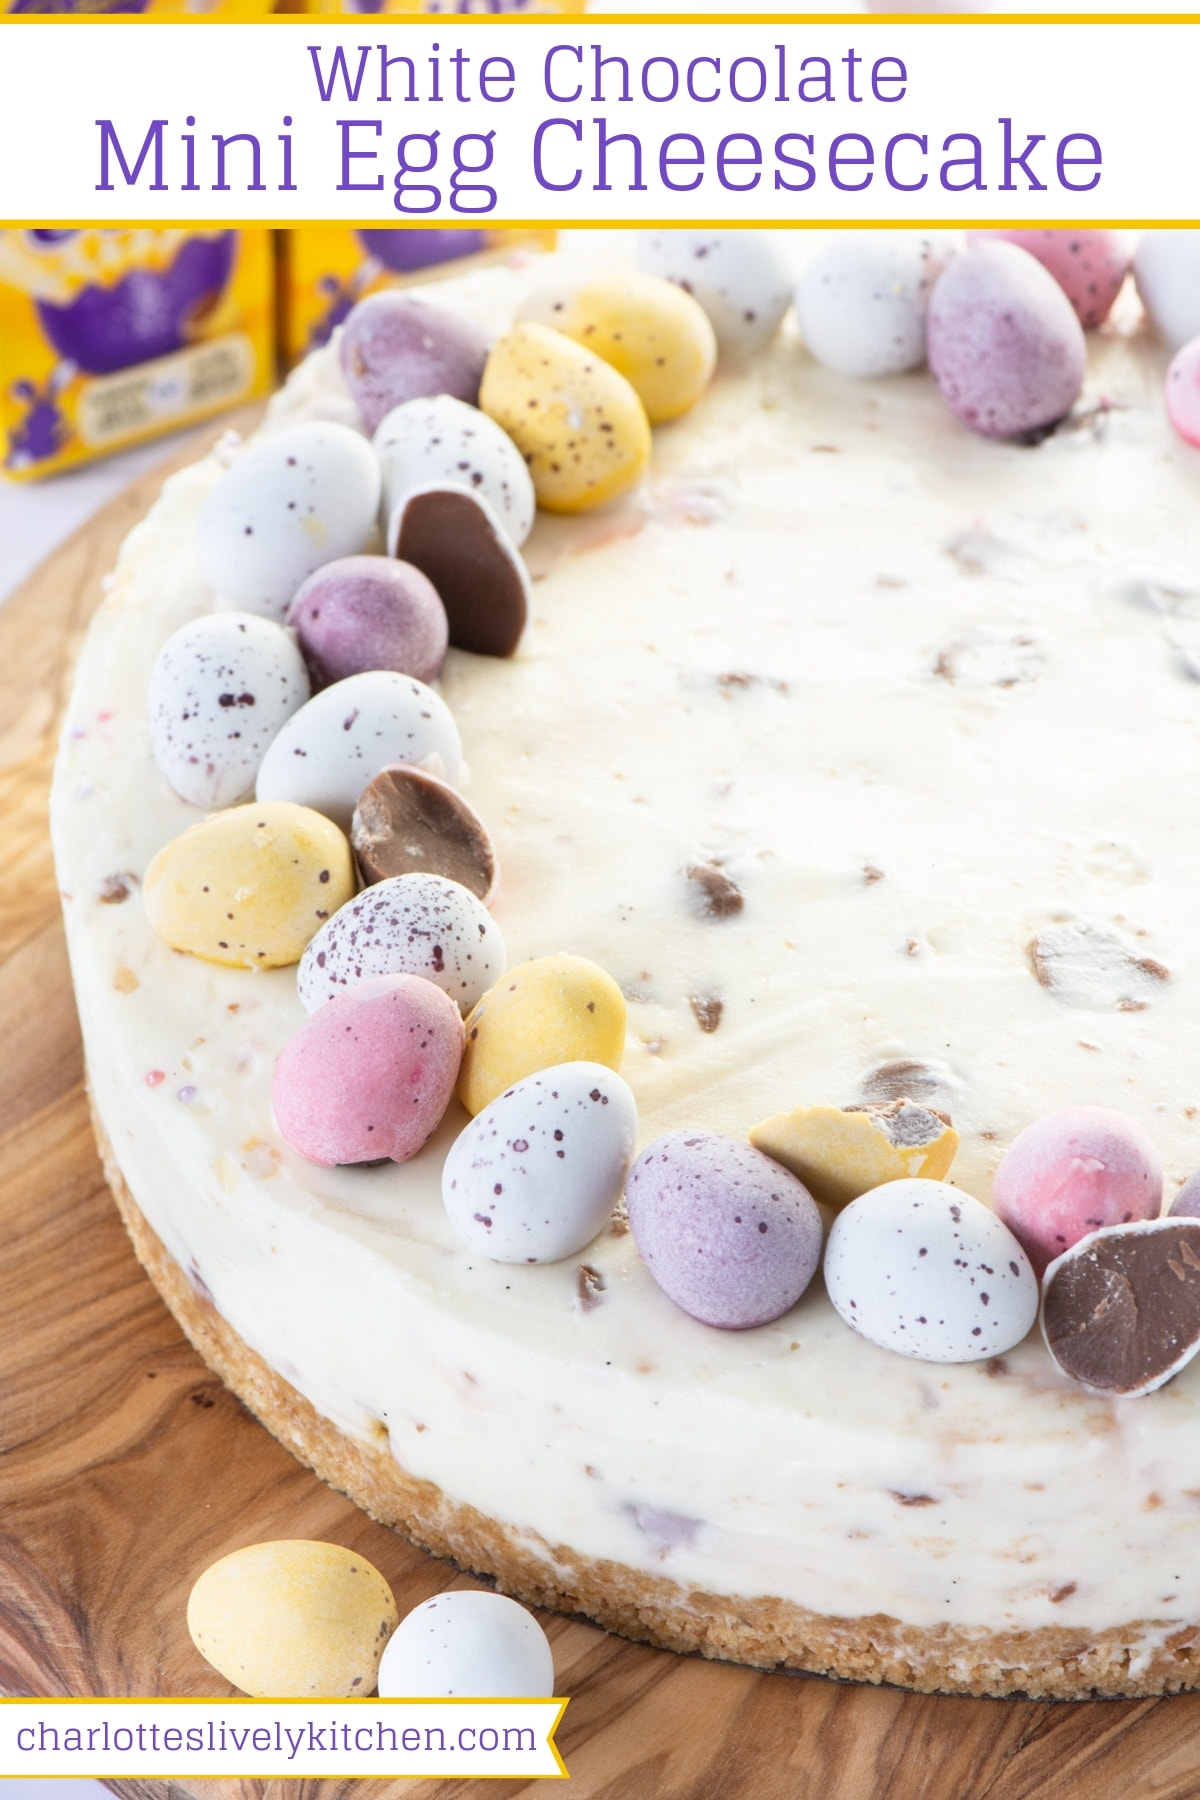 Mini Egg Cheesecake - A smooth white chocolate cheesecake with a cruchy biscuit base of lots of mini eggs running through it.